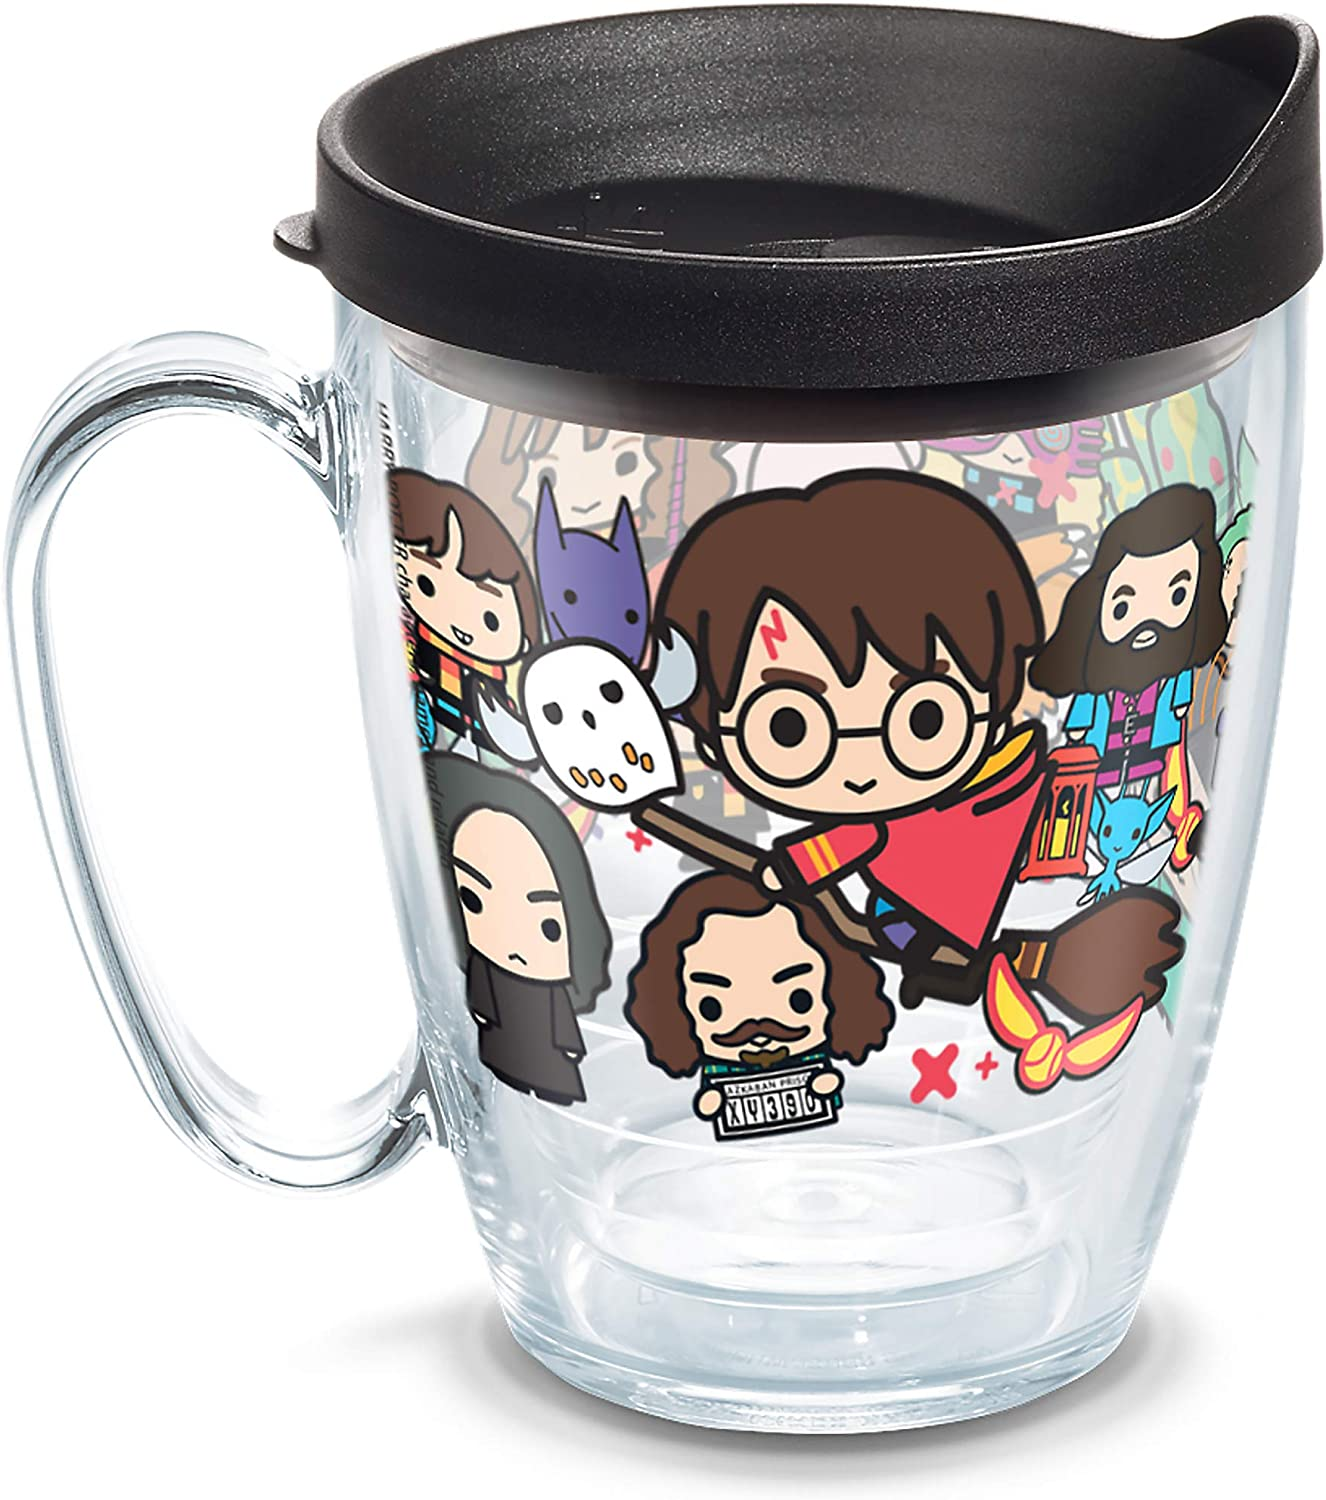 Tervis 1267948 Harry Potter - Group Charms Tumbler with Wrap and Black Lid 16oz Mug, Clear